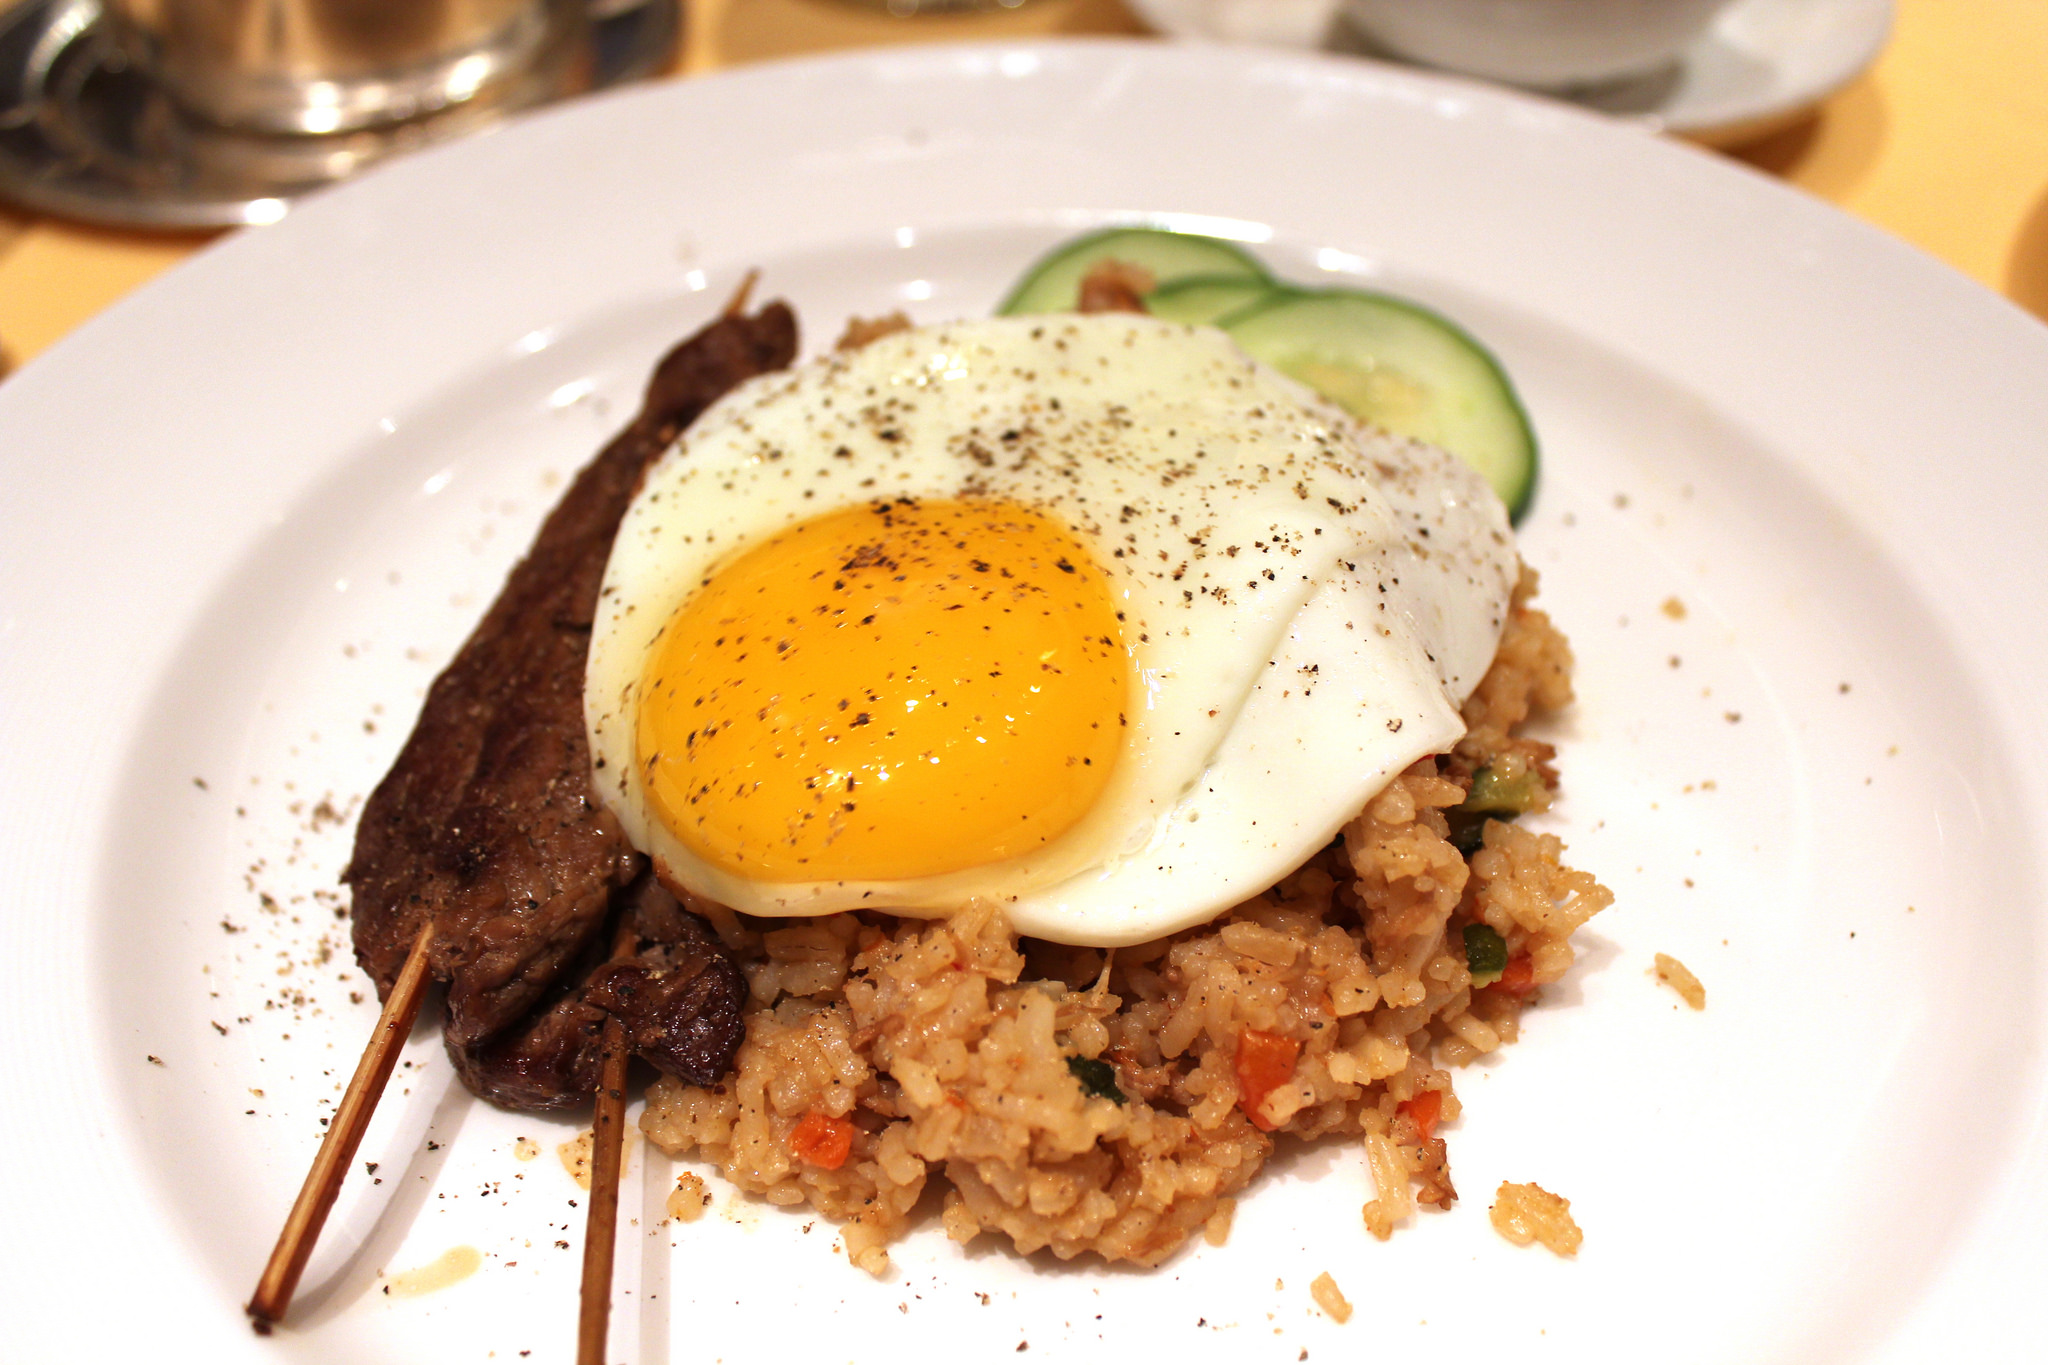 indonesian food in singapore, what to do in singapore, Indonesian food, singapore guide